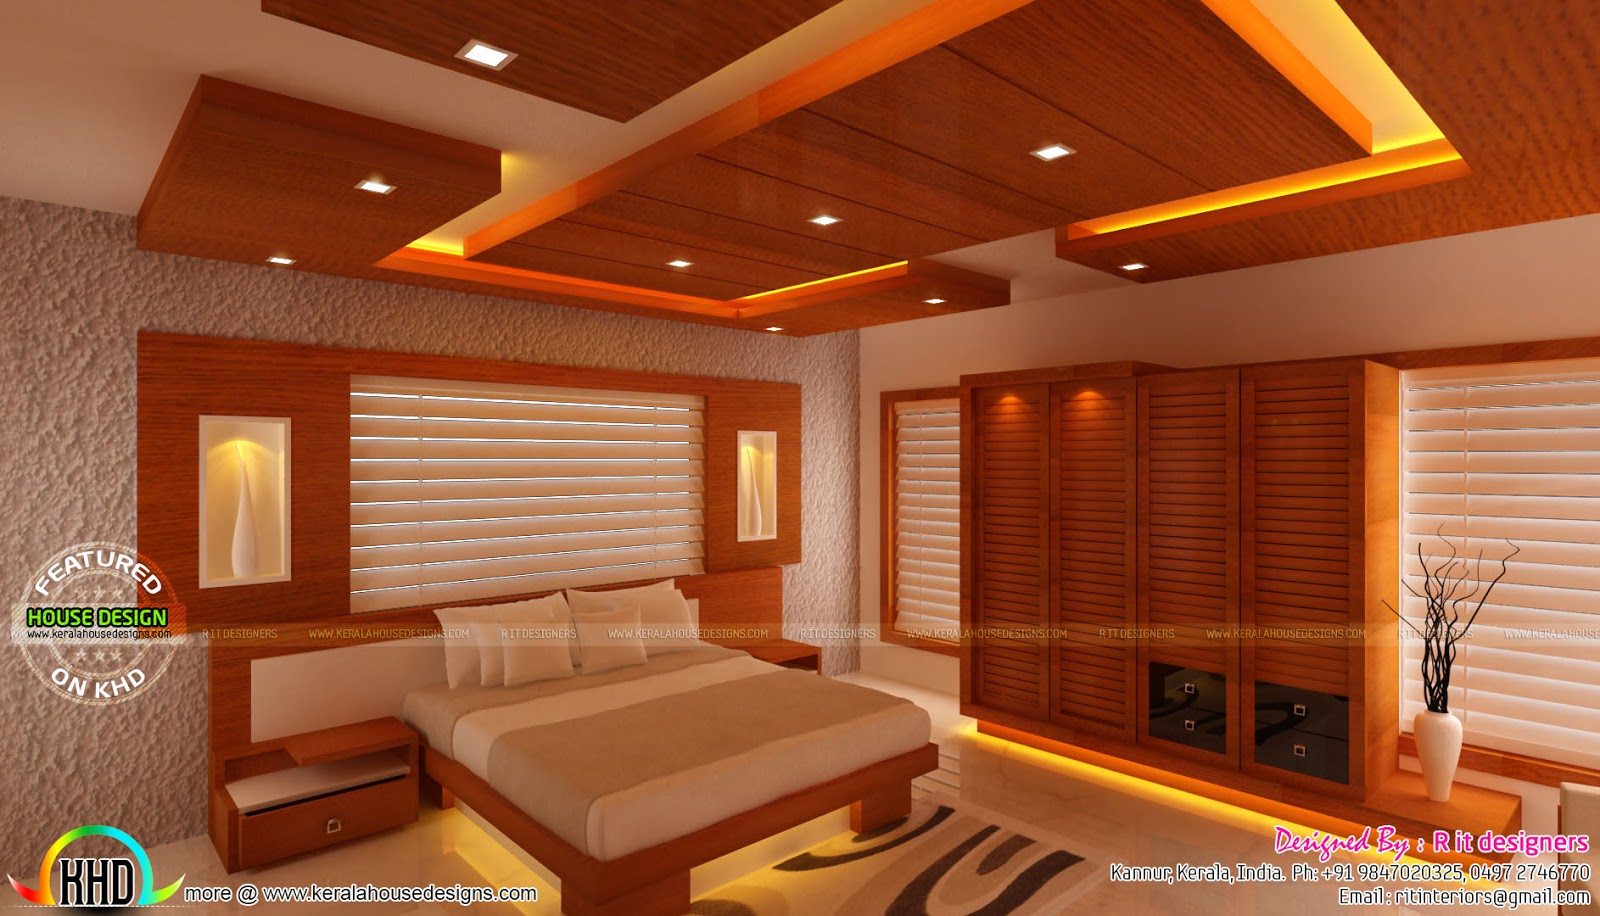 Wooden finish interior designs kerala home design and for Interior designs in kerala